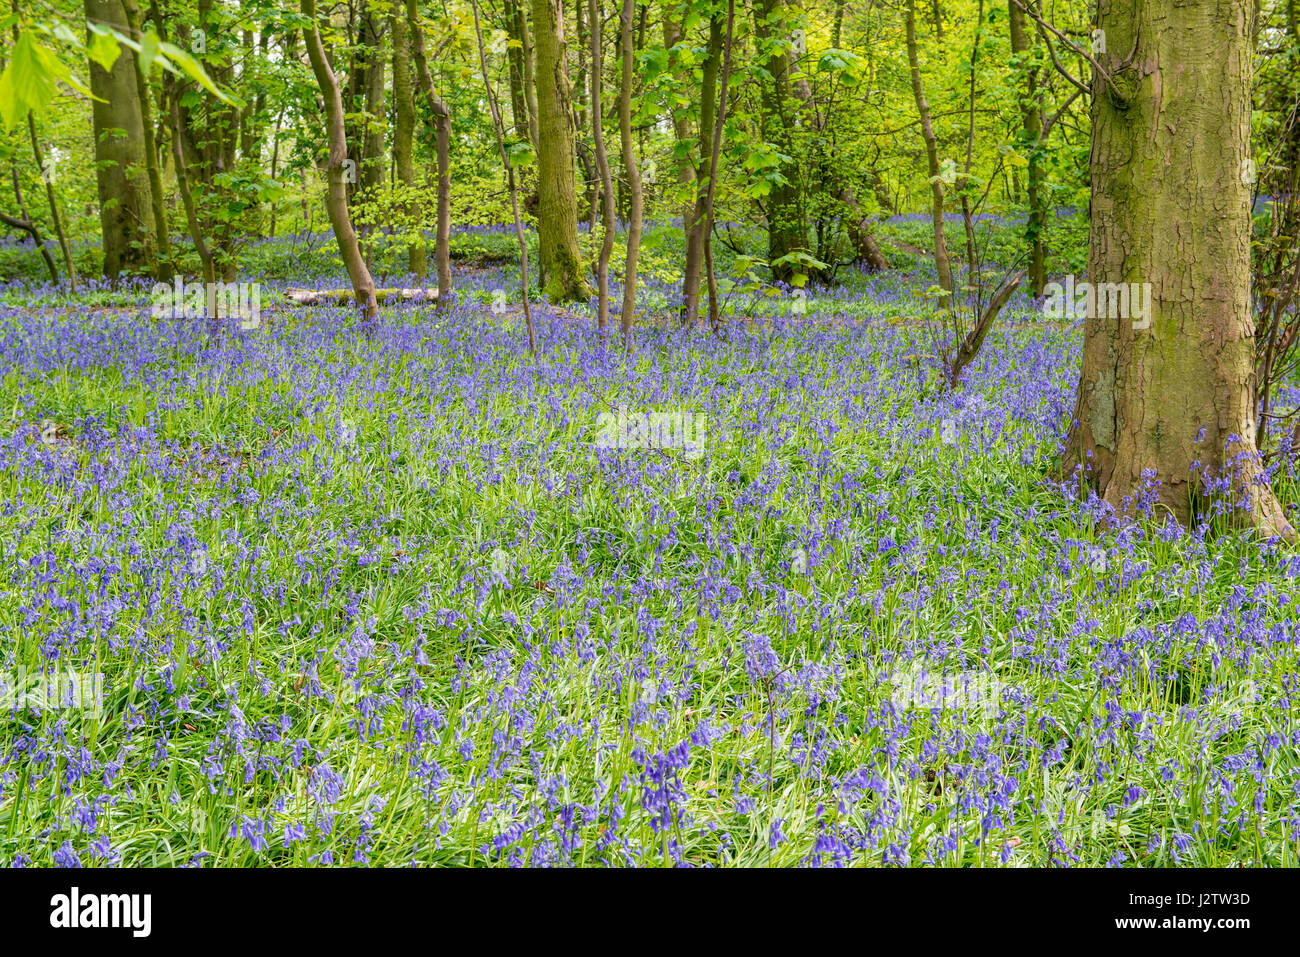 Bluebells In Ancient Woodland, Cheshire, UK Stock Photo